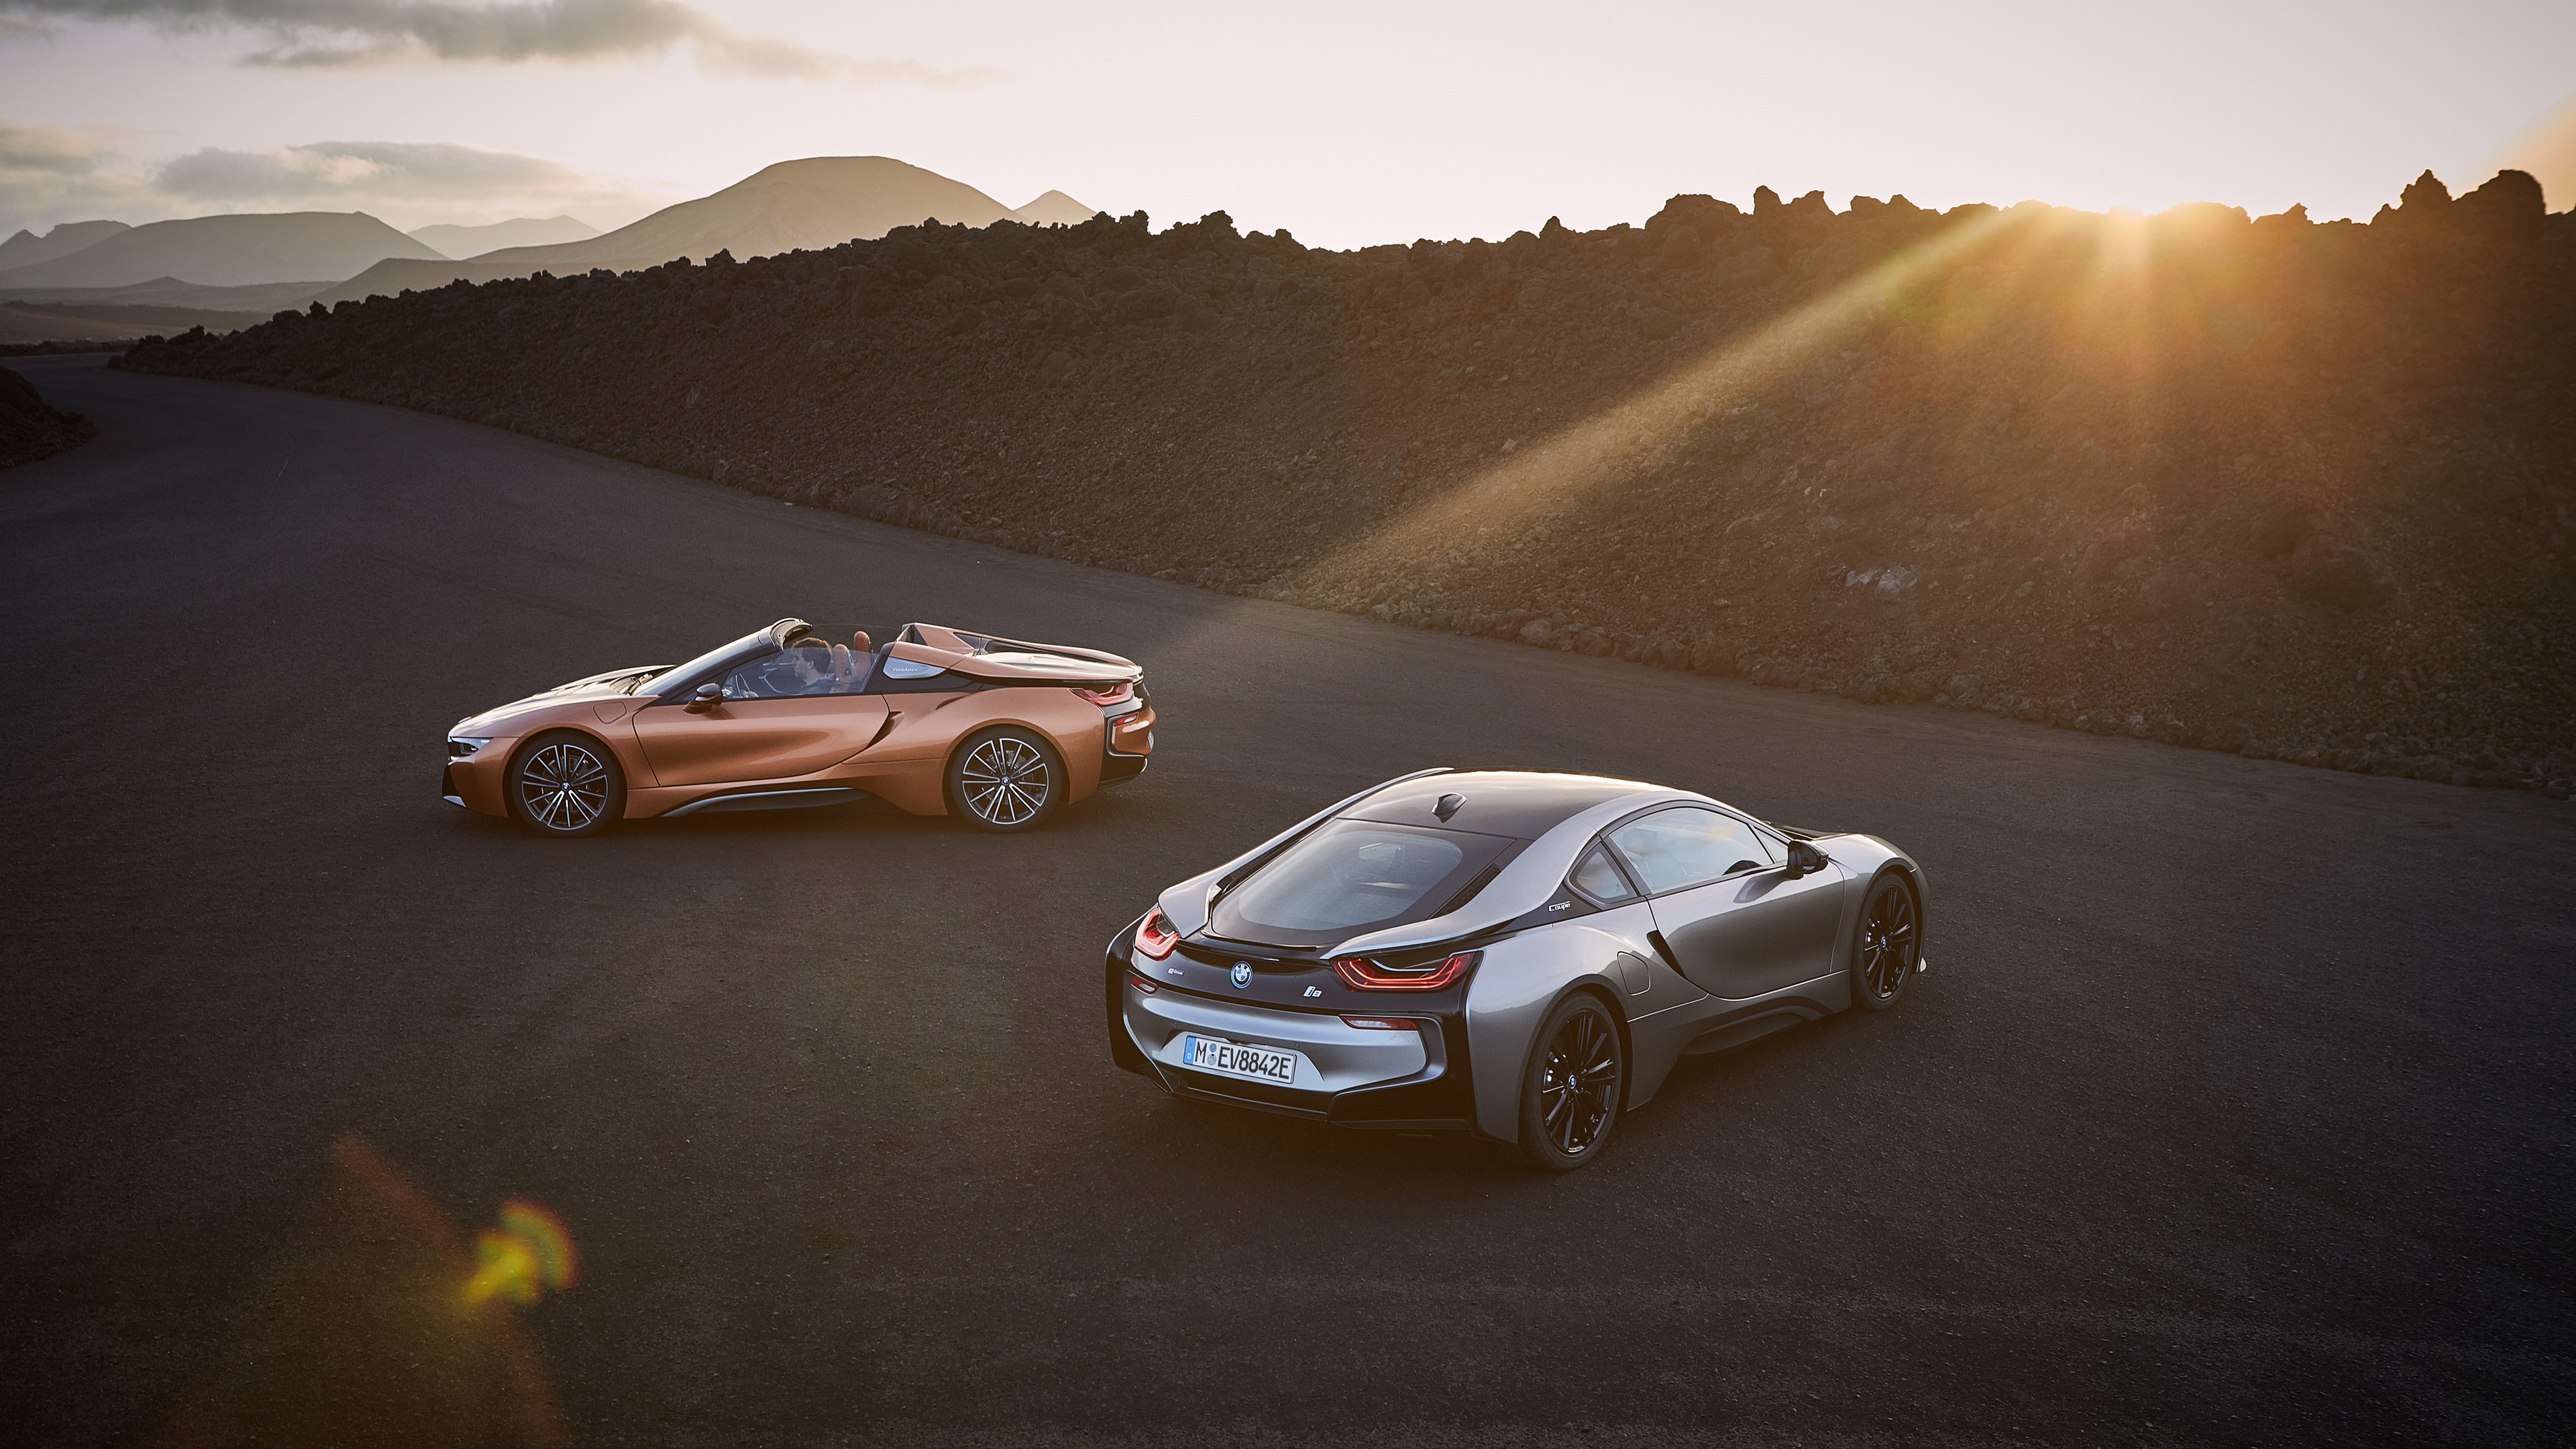 bmw i8 4k 1539108174 - BMW I8 4k - hd-wallpapers, cars wallpapers, bmw wallpapers, bmw i8 wallpapers, 4k-wallpapers, 2018 cars wallpapers